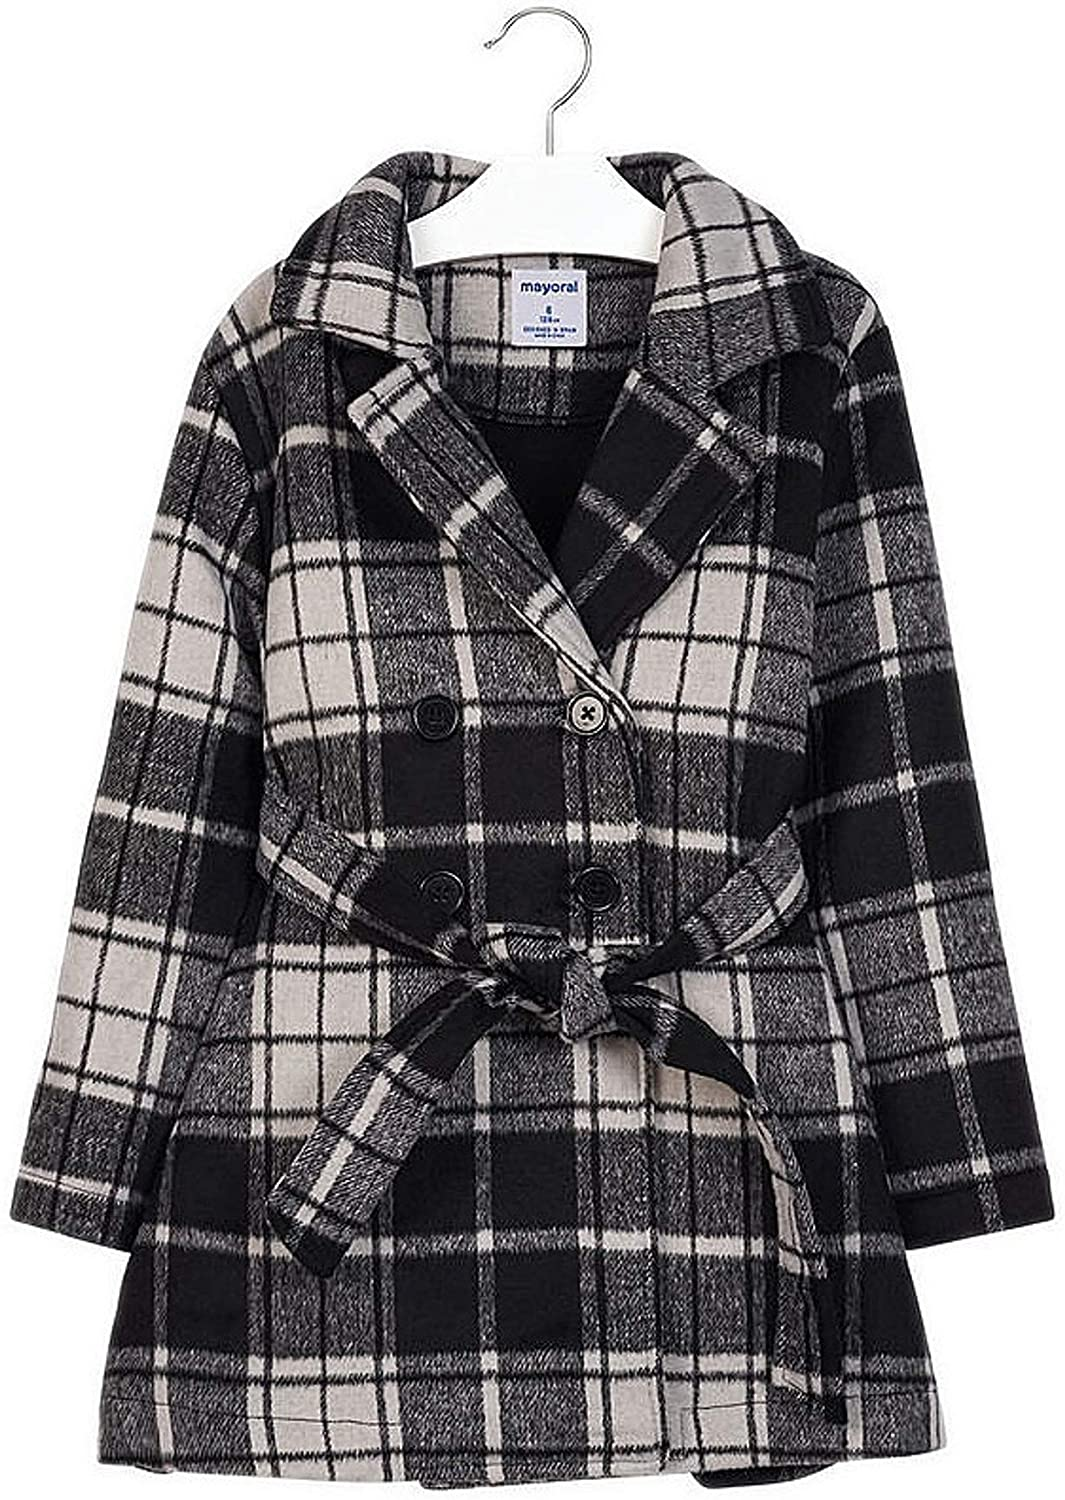 Mayoral - Checkered Coat for Girls - 7417, Black